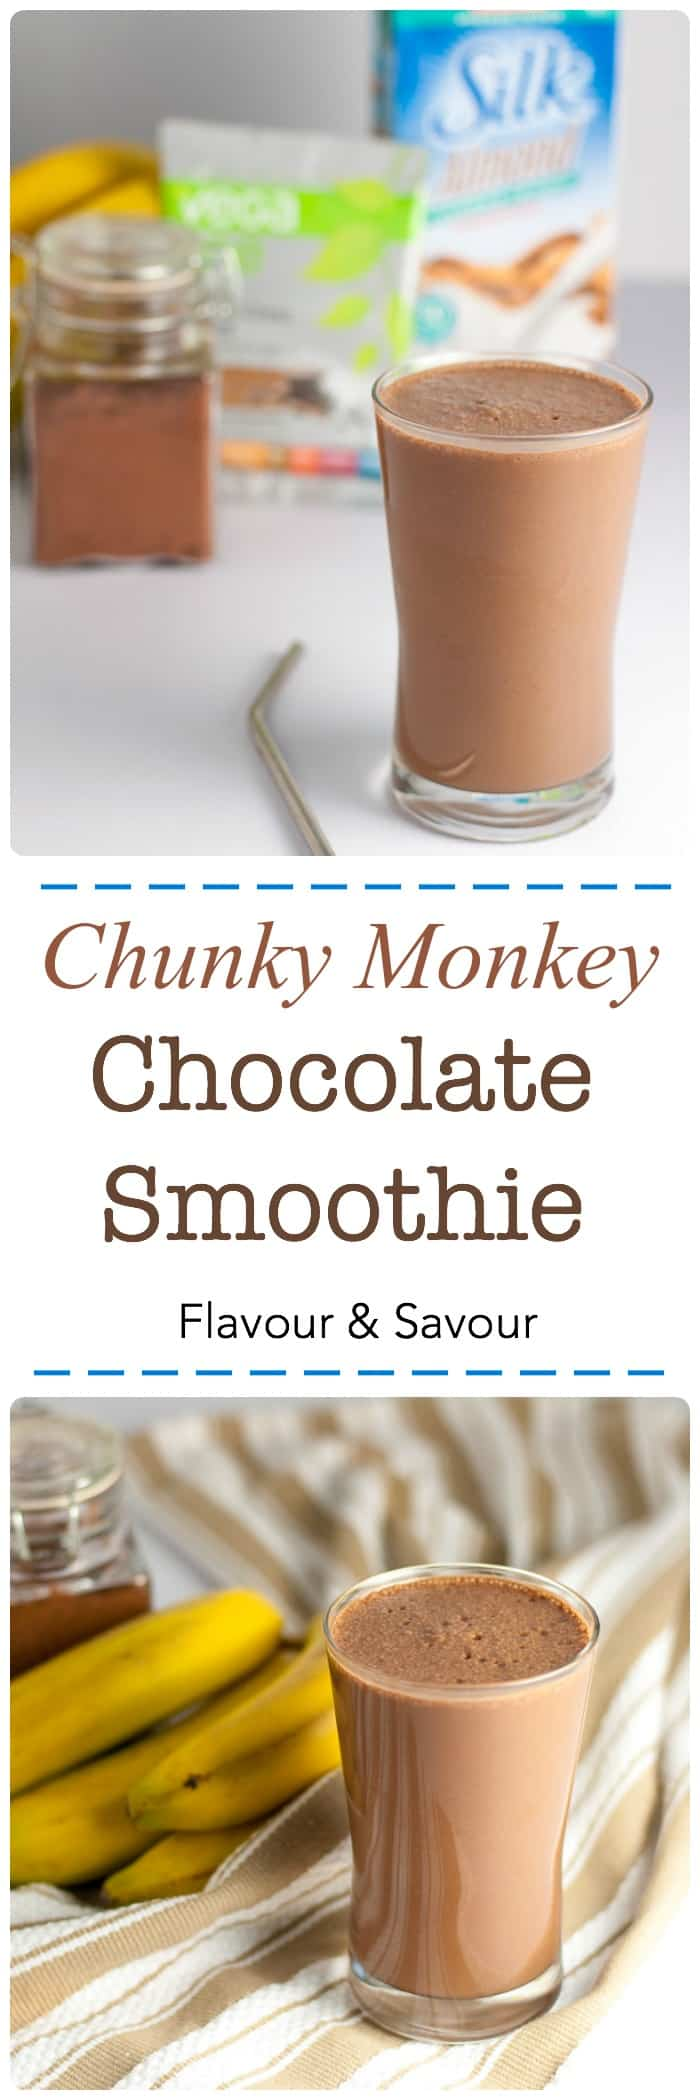 Chunky Monkey Dessert Smoothie. Made with Vega One Nutritional Shake mix and Silk non-dairy milk, banana, peanut or almond butter and thickened with avocado. A healthy dessert! #SilkSummerofSmoothies #Vega #ad